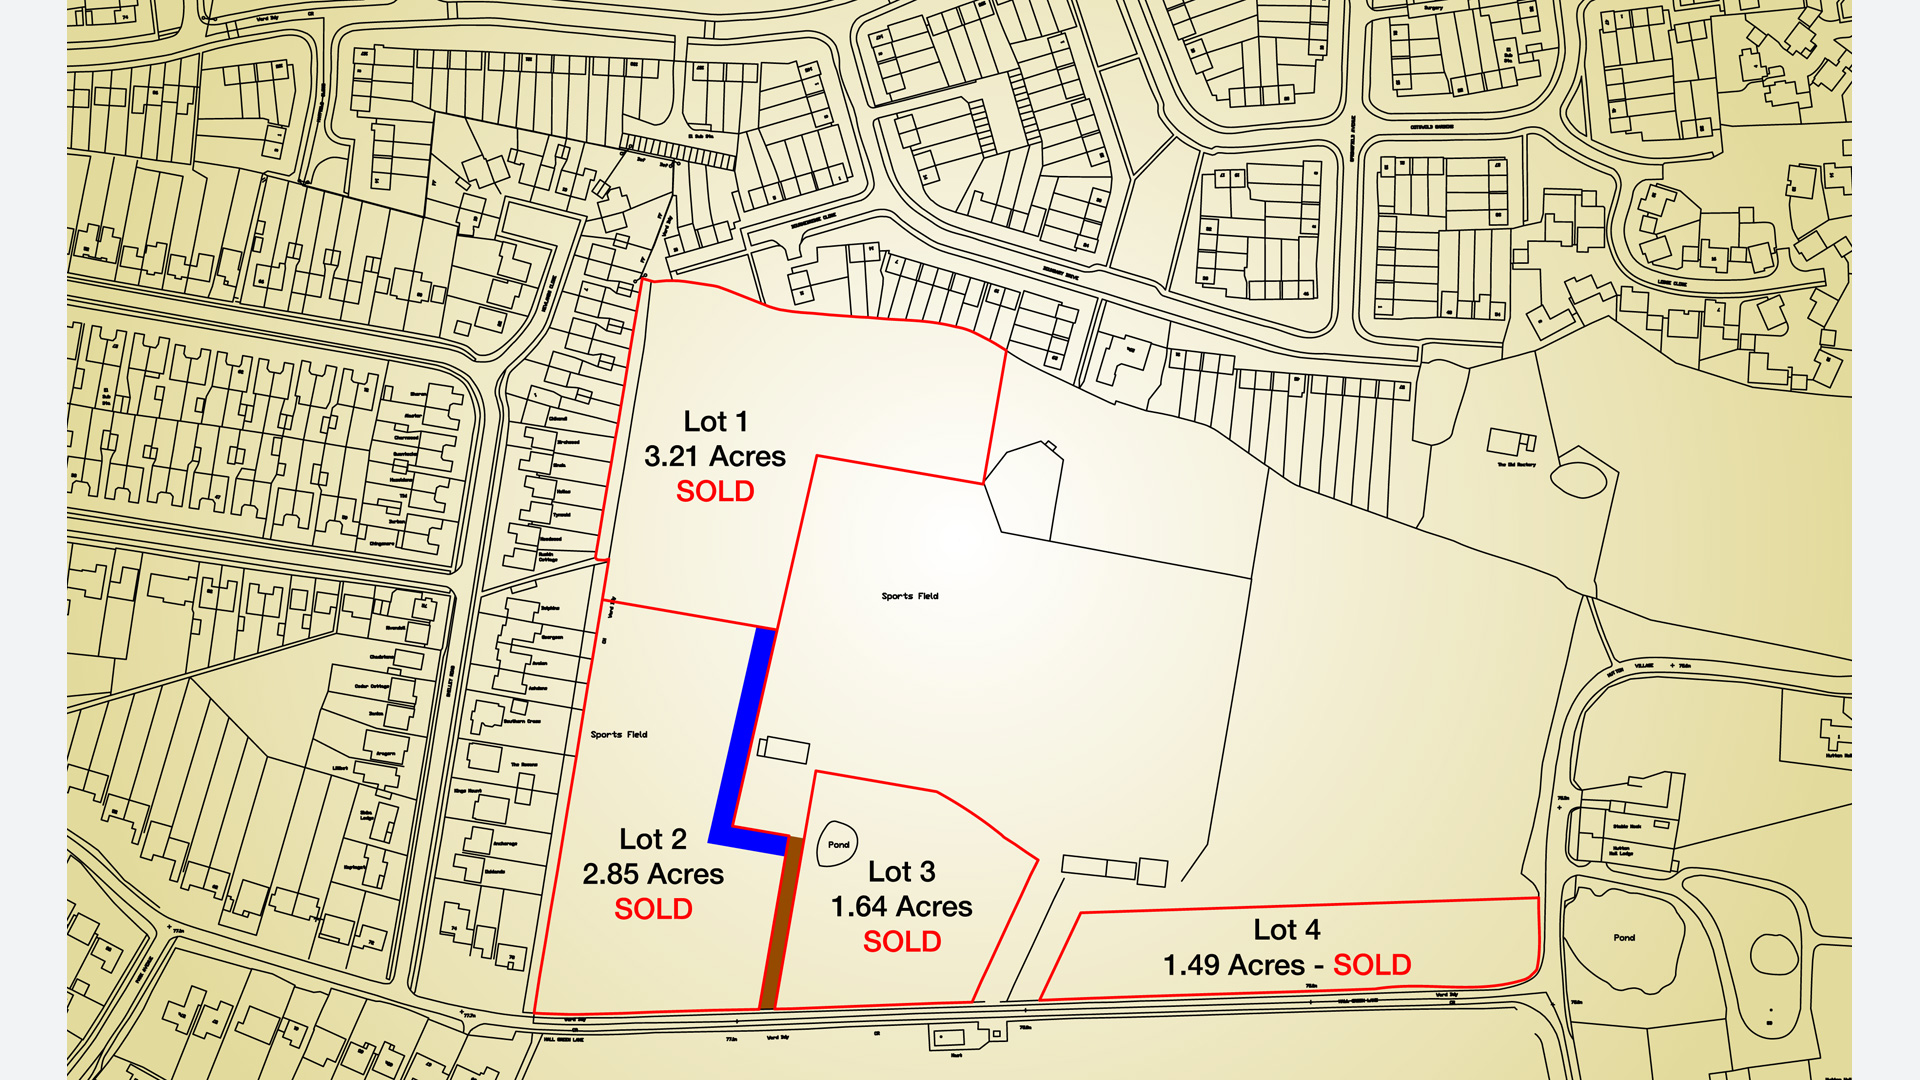 Land for sale in Brentwood